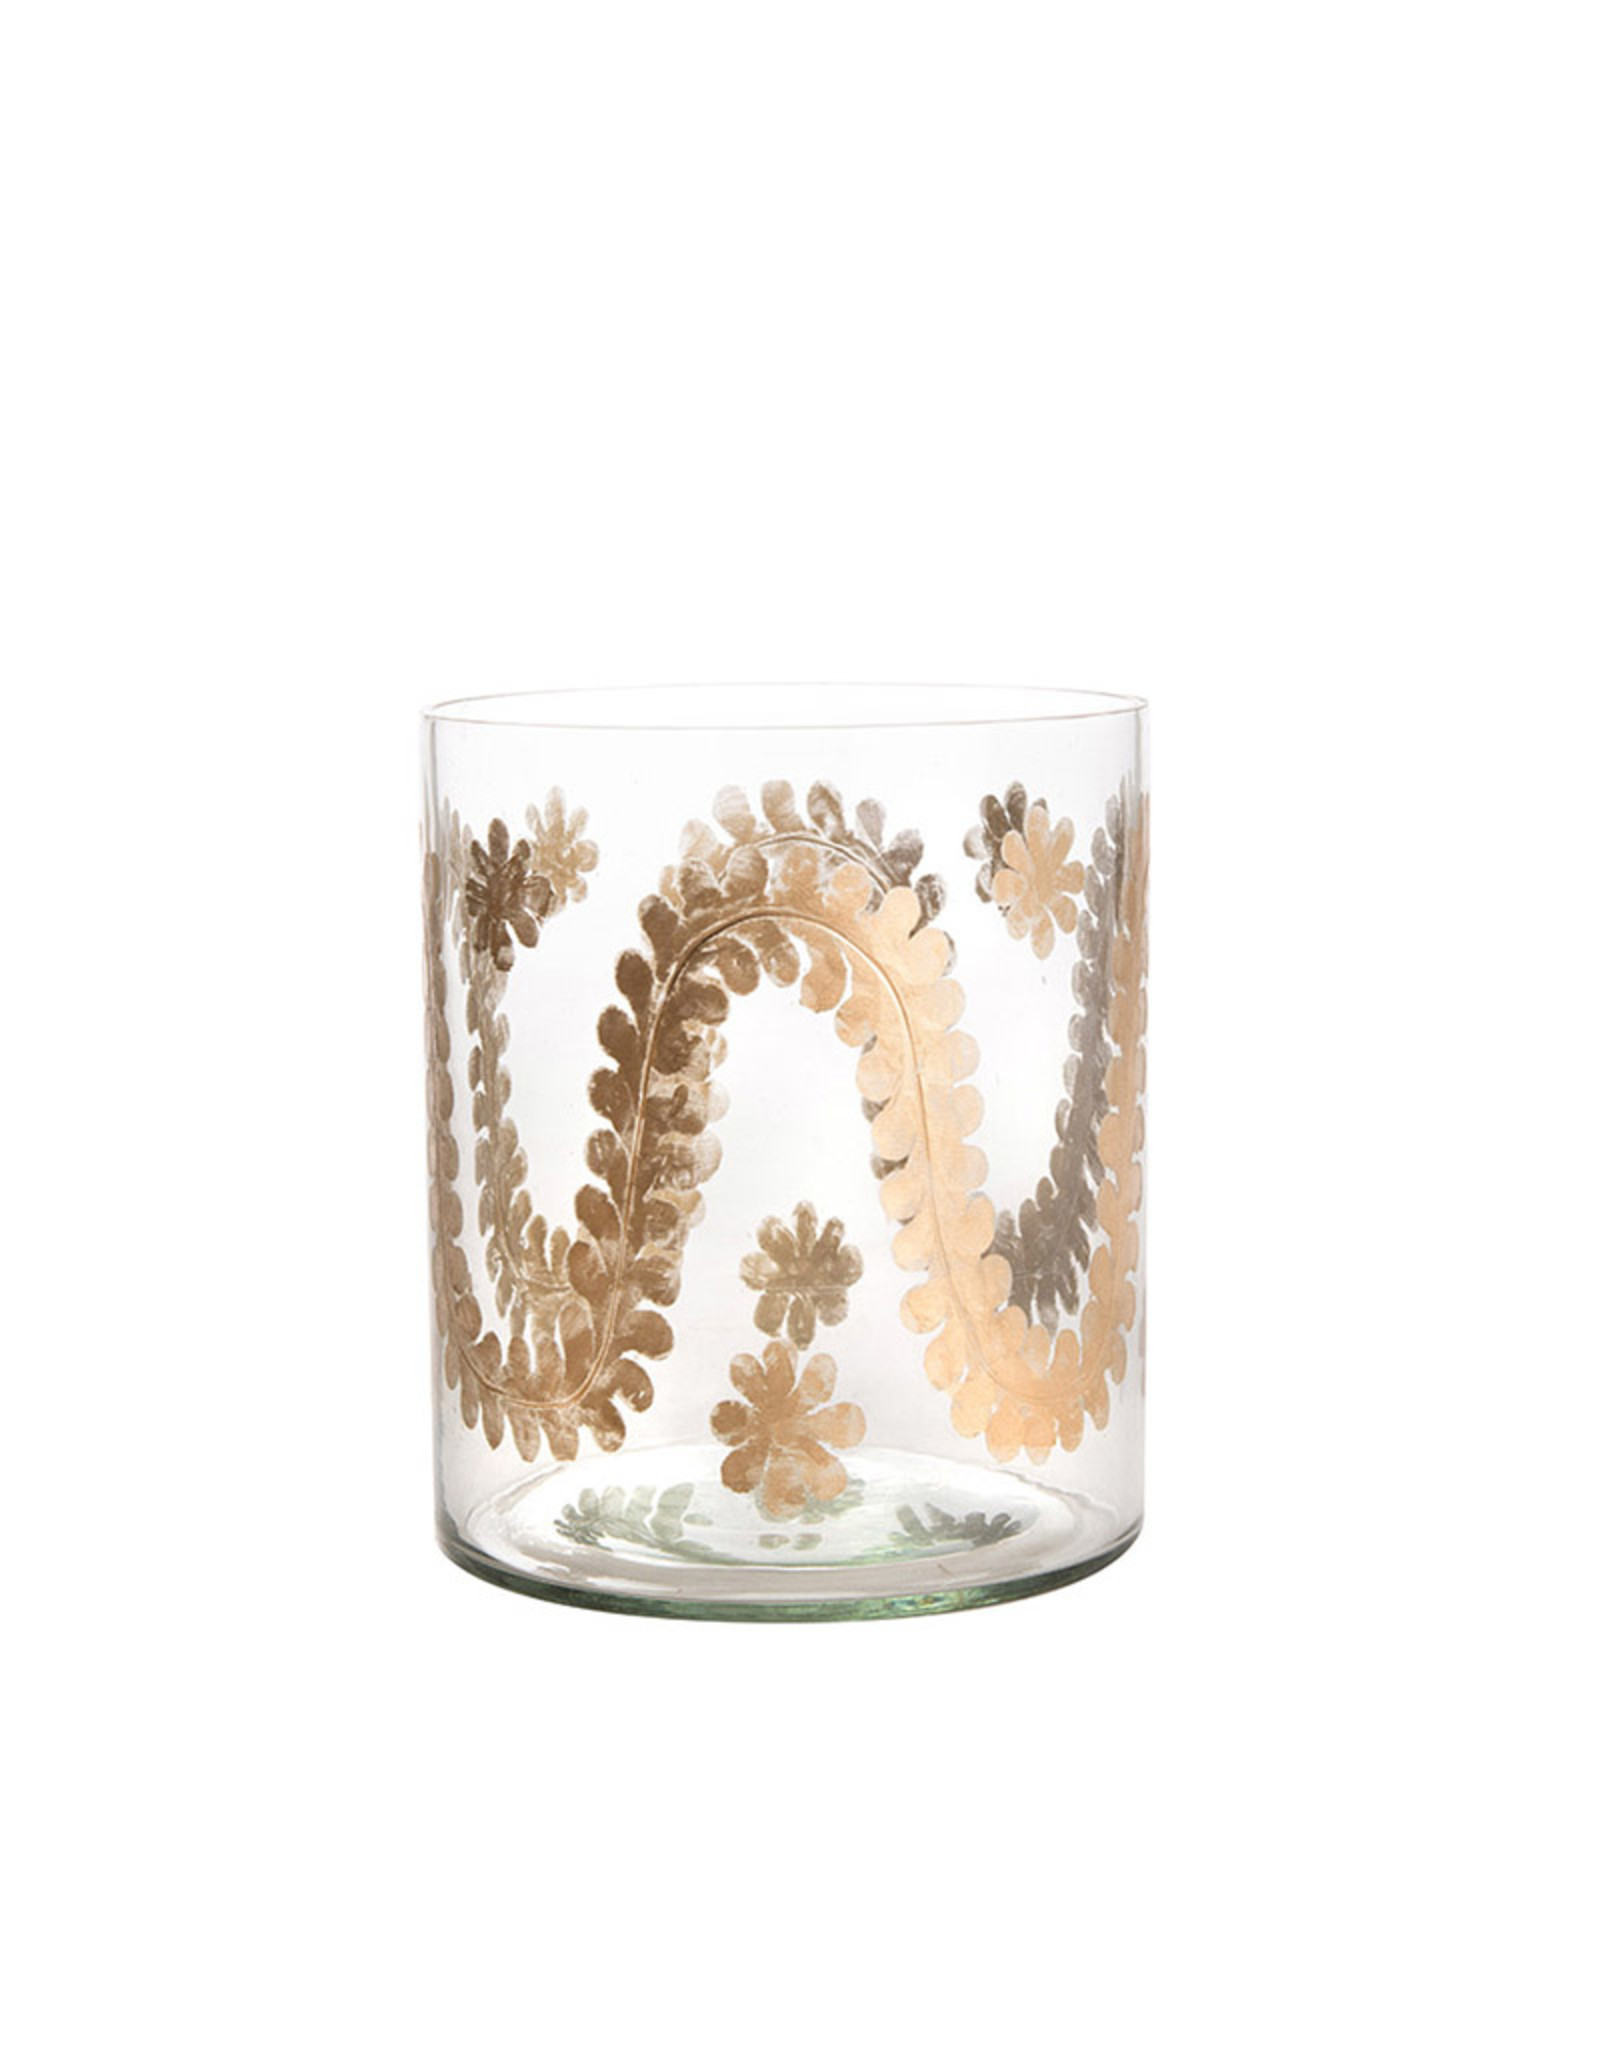 Large candle holder clear glass decorated with gold swirls